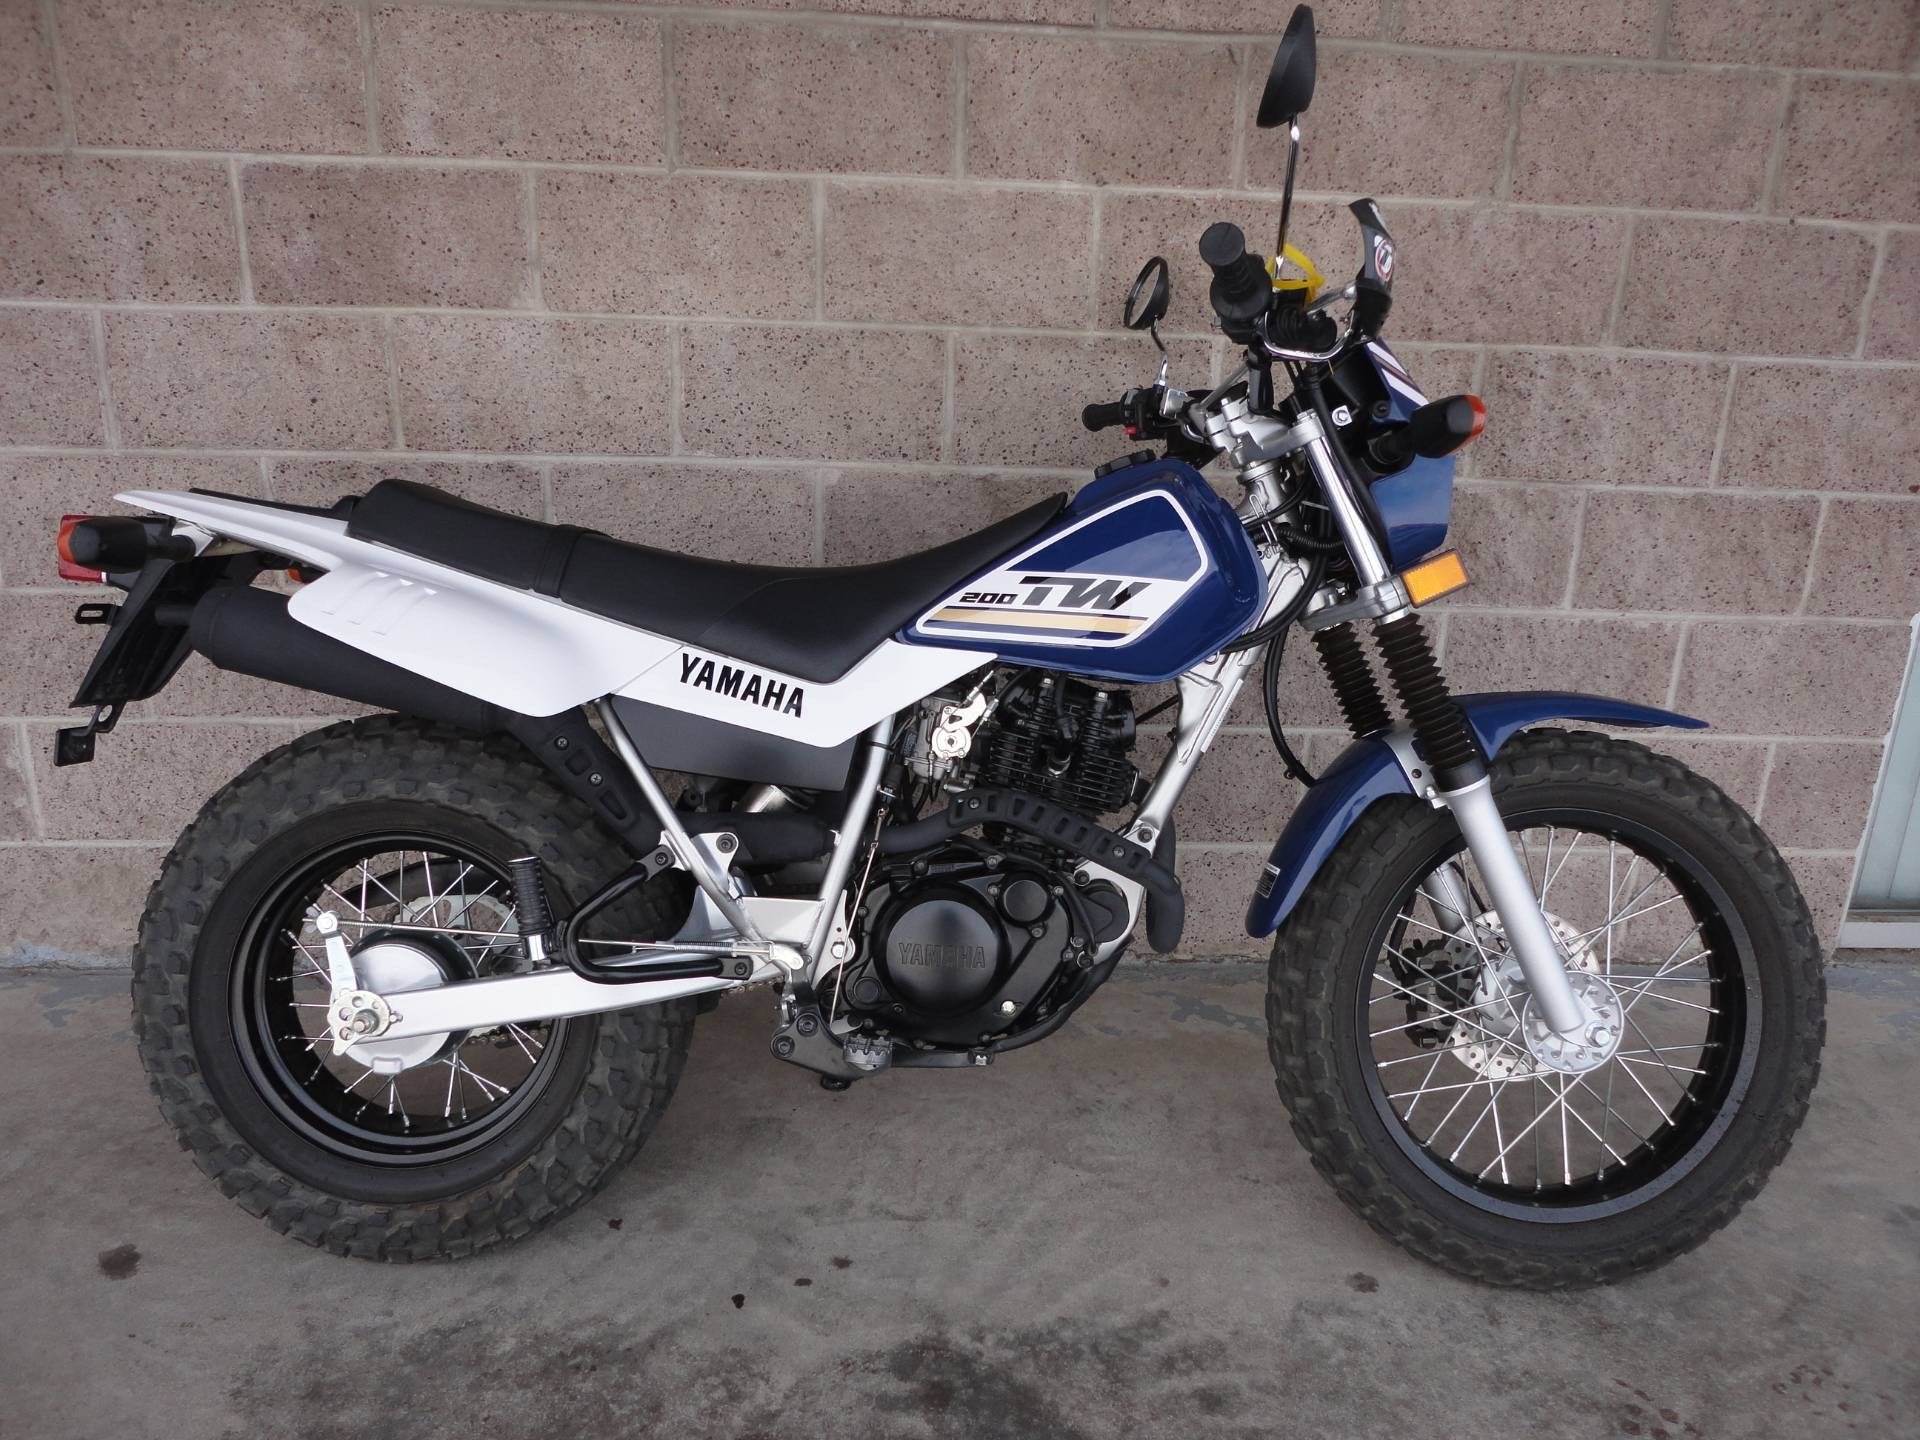 2017 Yamaha TW200 in Denver, Colorado - Photo 11